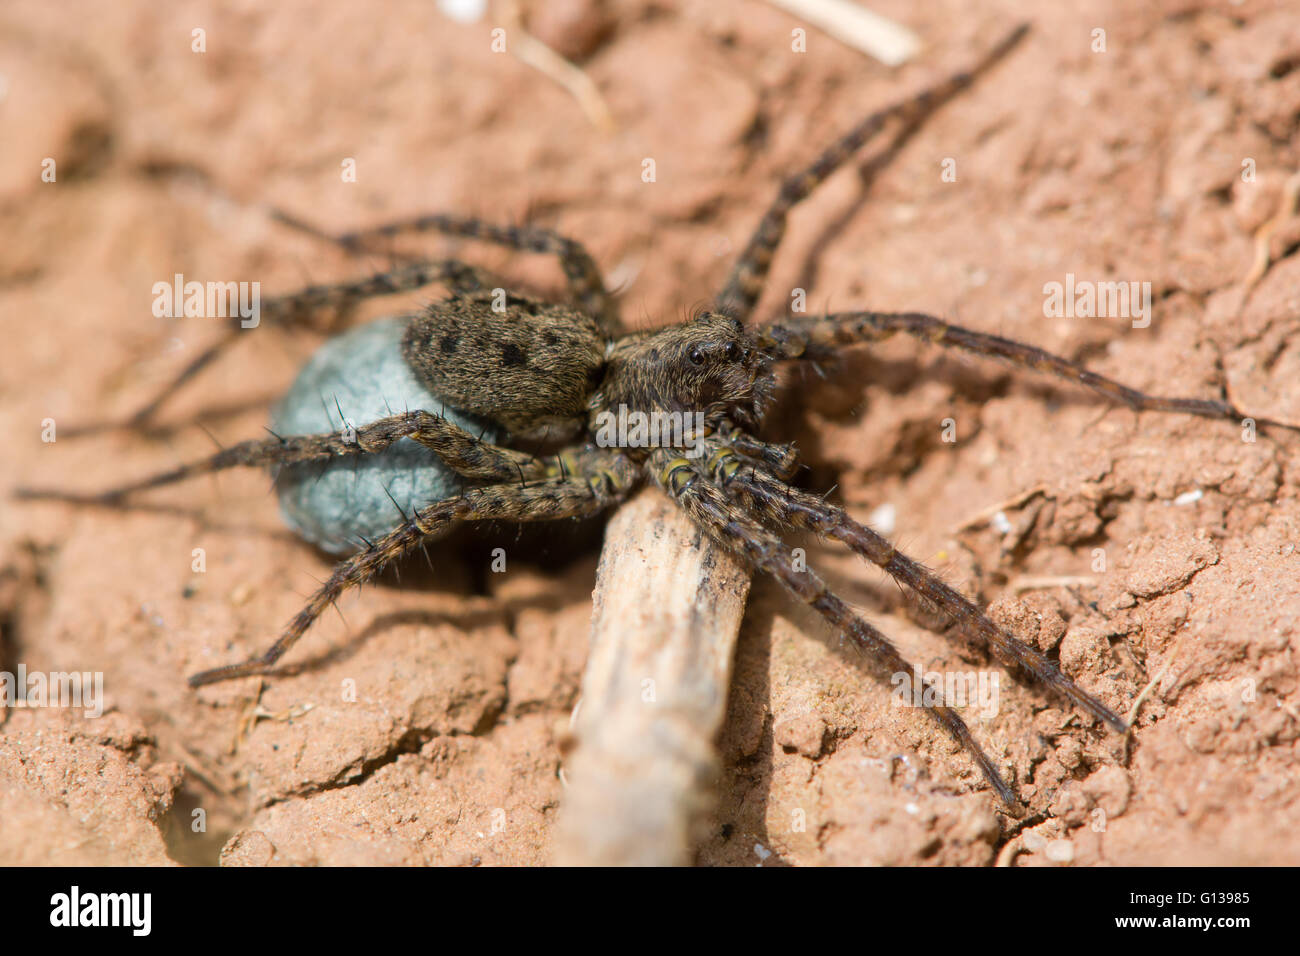 Wolf spider (Pardosa sp.) female with egg sac. Blue silk containing eggs attached to spinarets of female in family - Stock Image